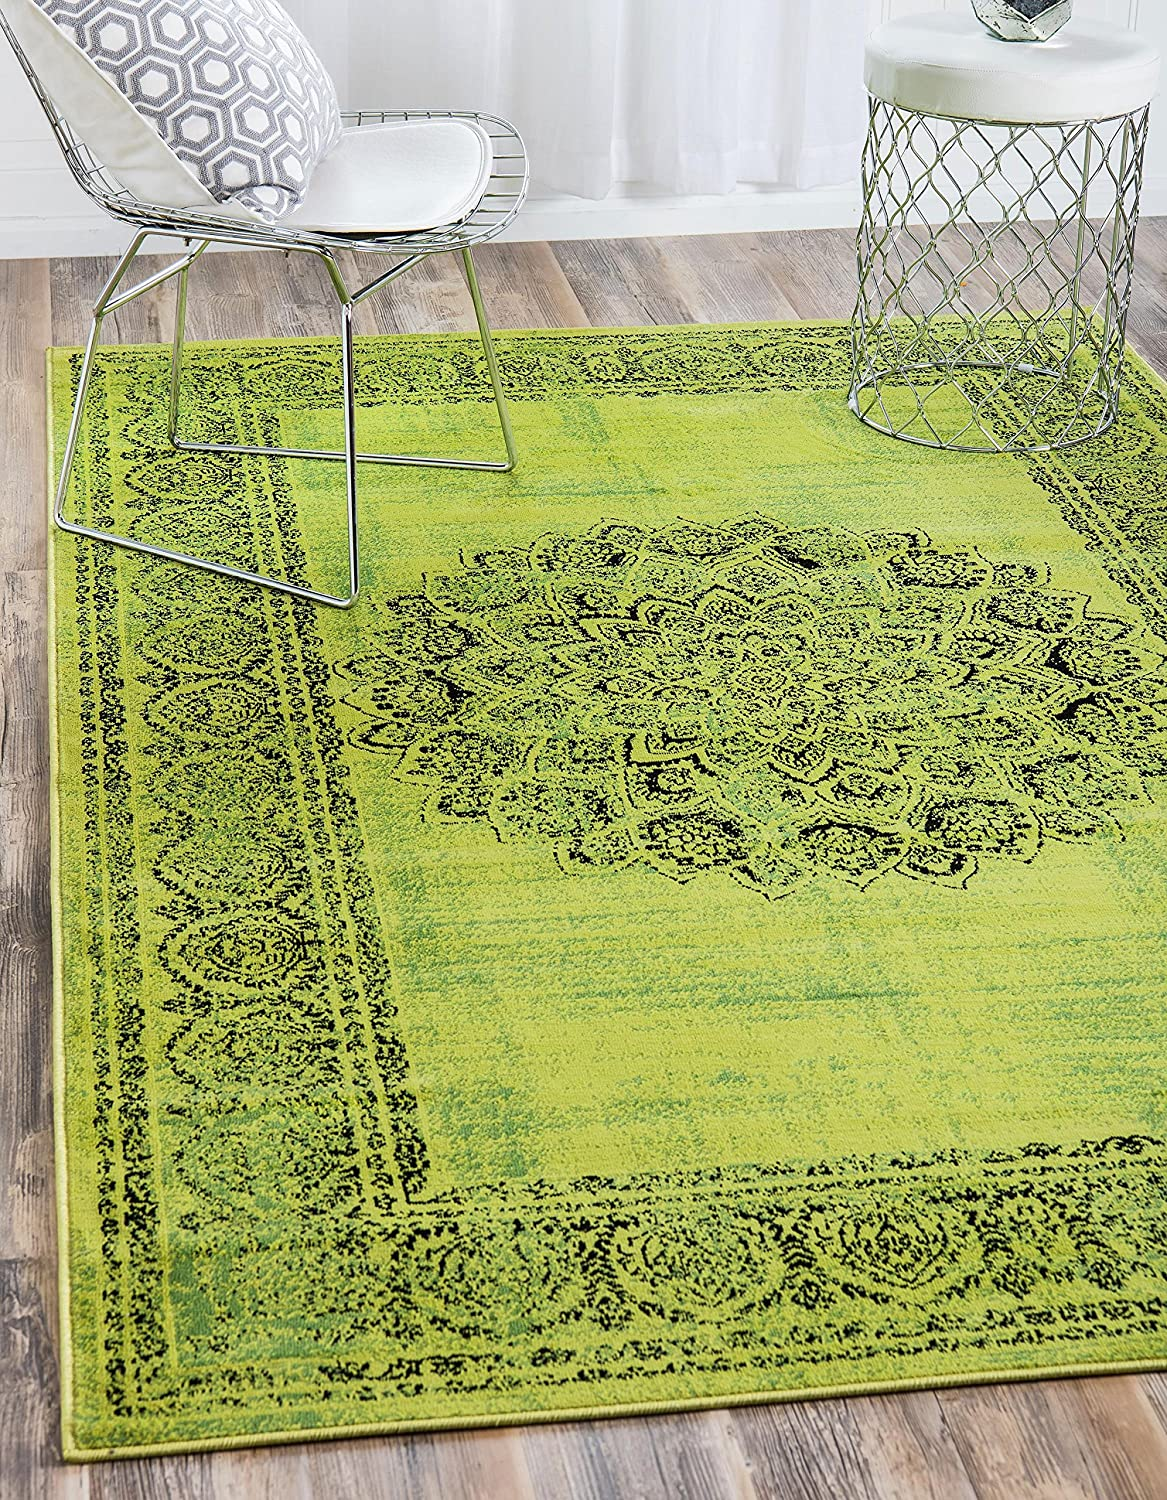 Unique Loom Imperial Collection Modern Traditional Vintage Distressed Sage Green Area Rug (4' 0 x 6' 0)